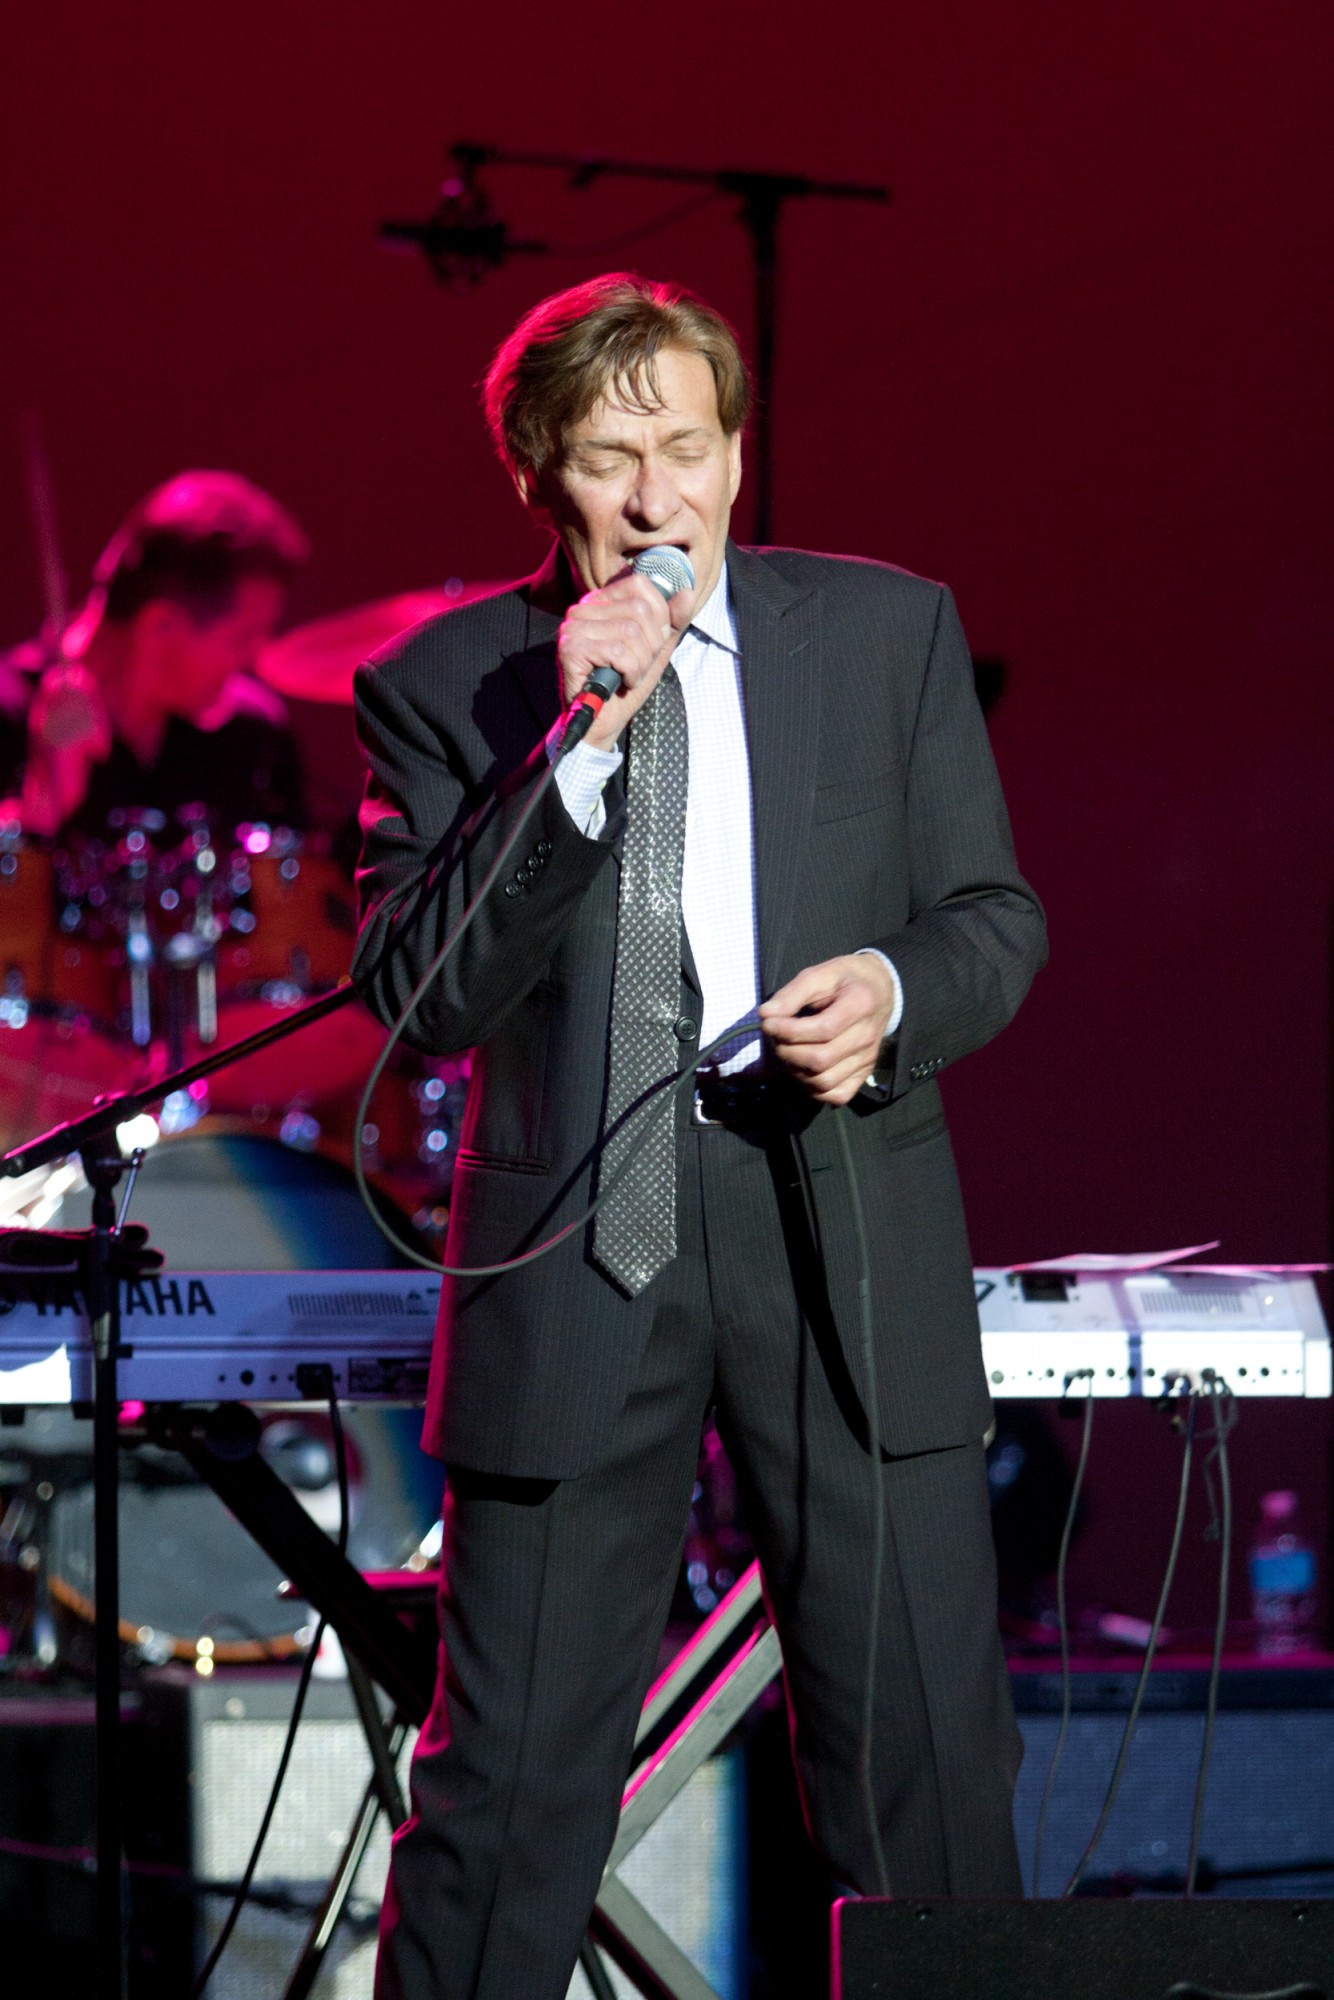 Bobby Caldwell Photo Gallery About Performing Arts Center